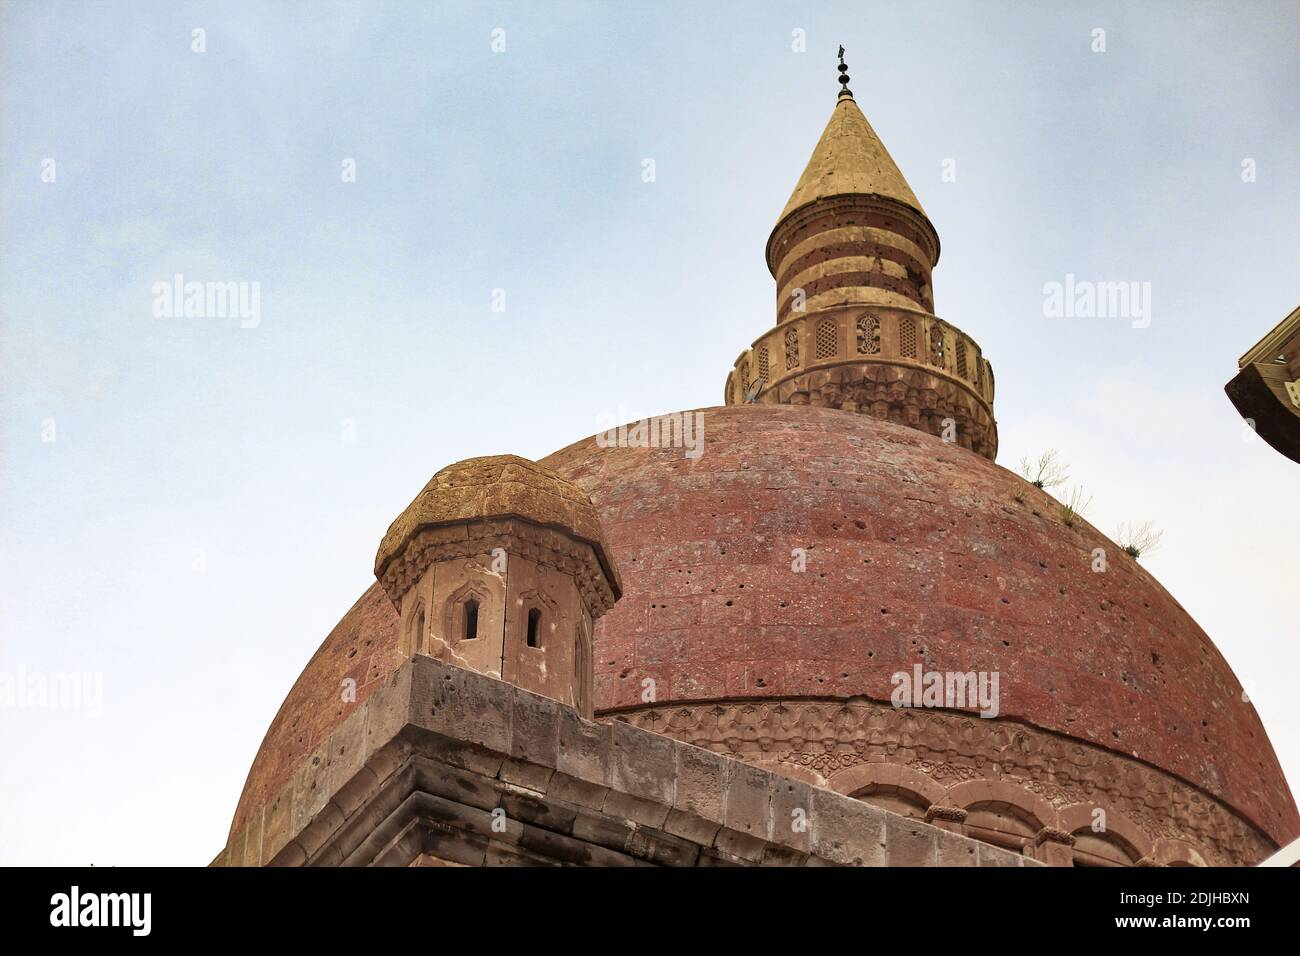 Agri, Turkey - May 2018: The minaret of Ishak Pasha Palace near Dogubayazit in Eastern Turkey. Beautiful brown mosque in the middle east. Different vi Stock Photo